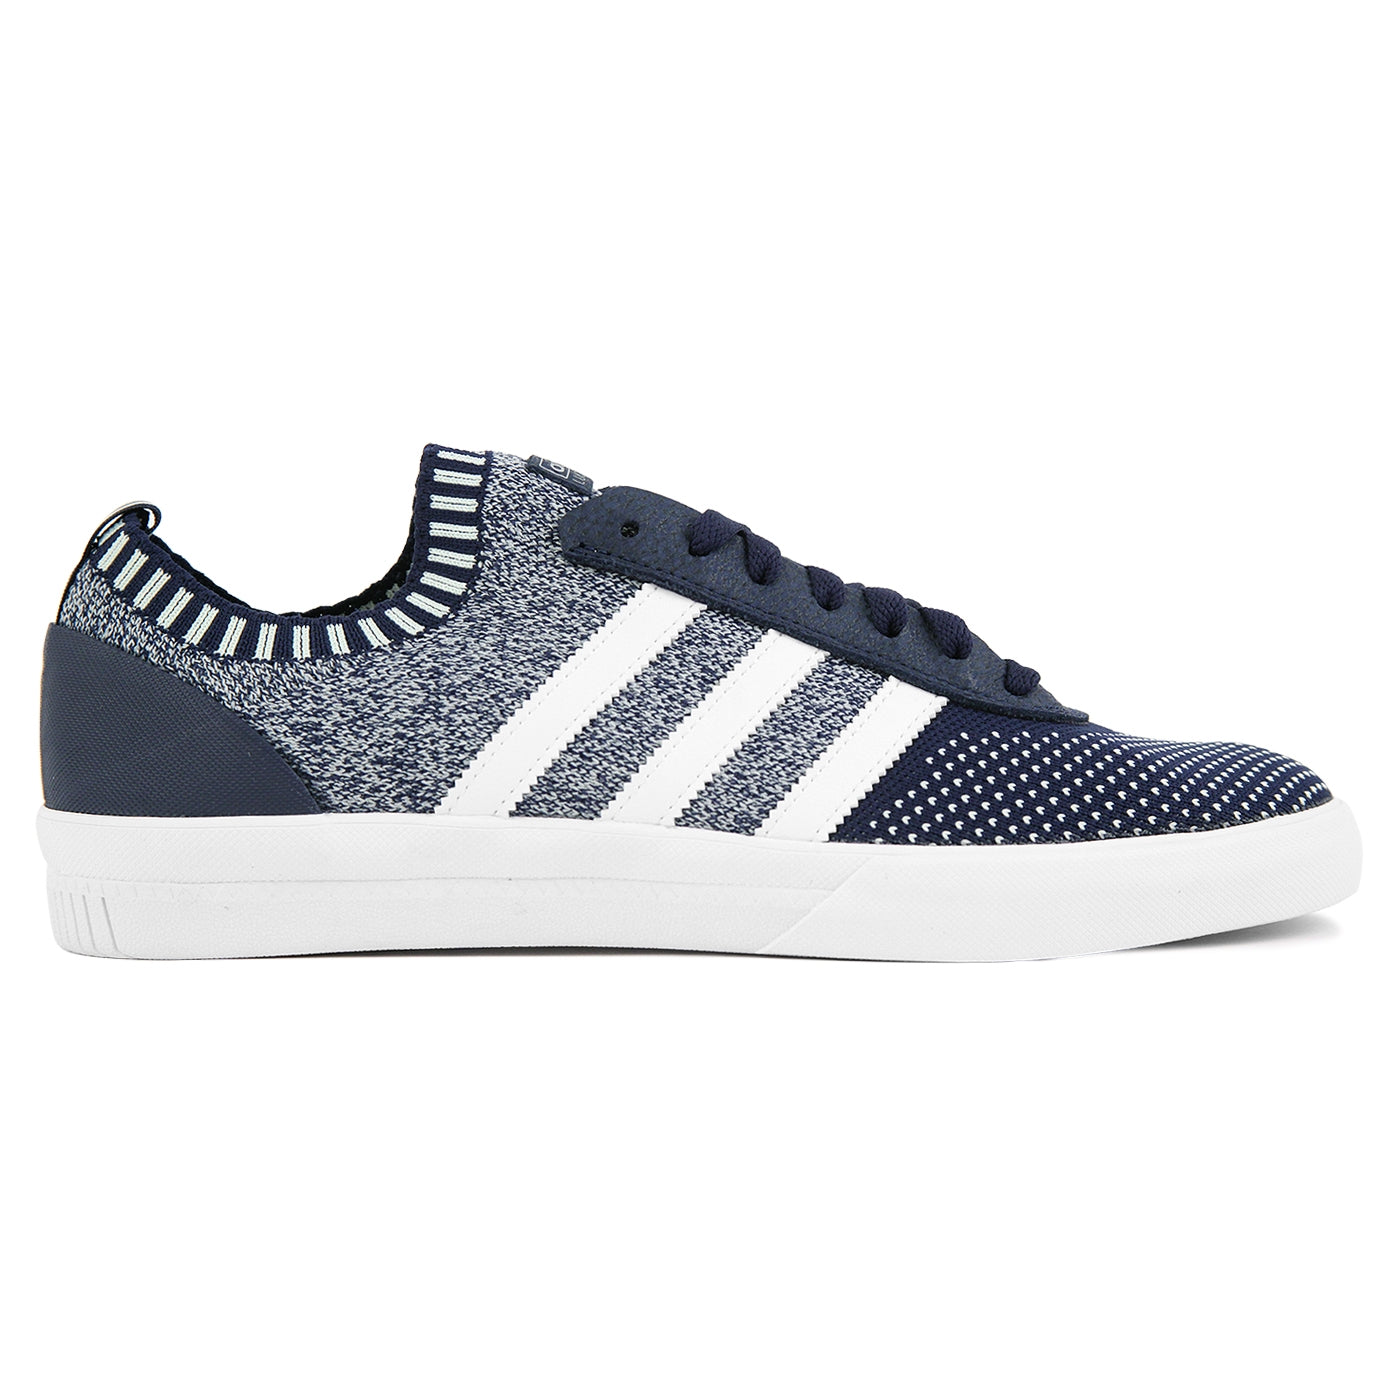 Adidas Skateboarding Lucas Premiere Primeknit Shoes - Collegiate Navy   FTW  White   Areo Green 67080be13